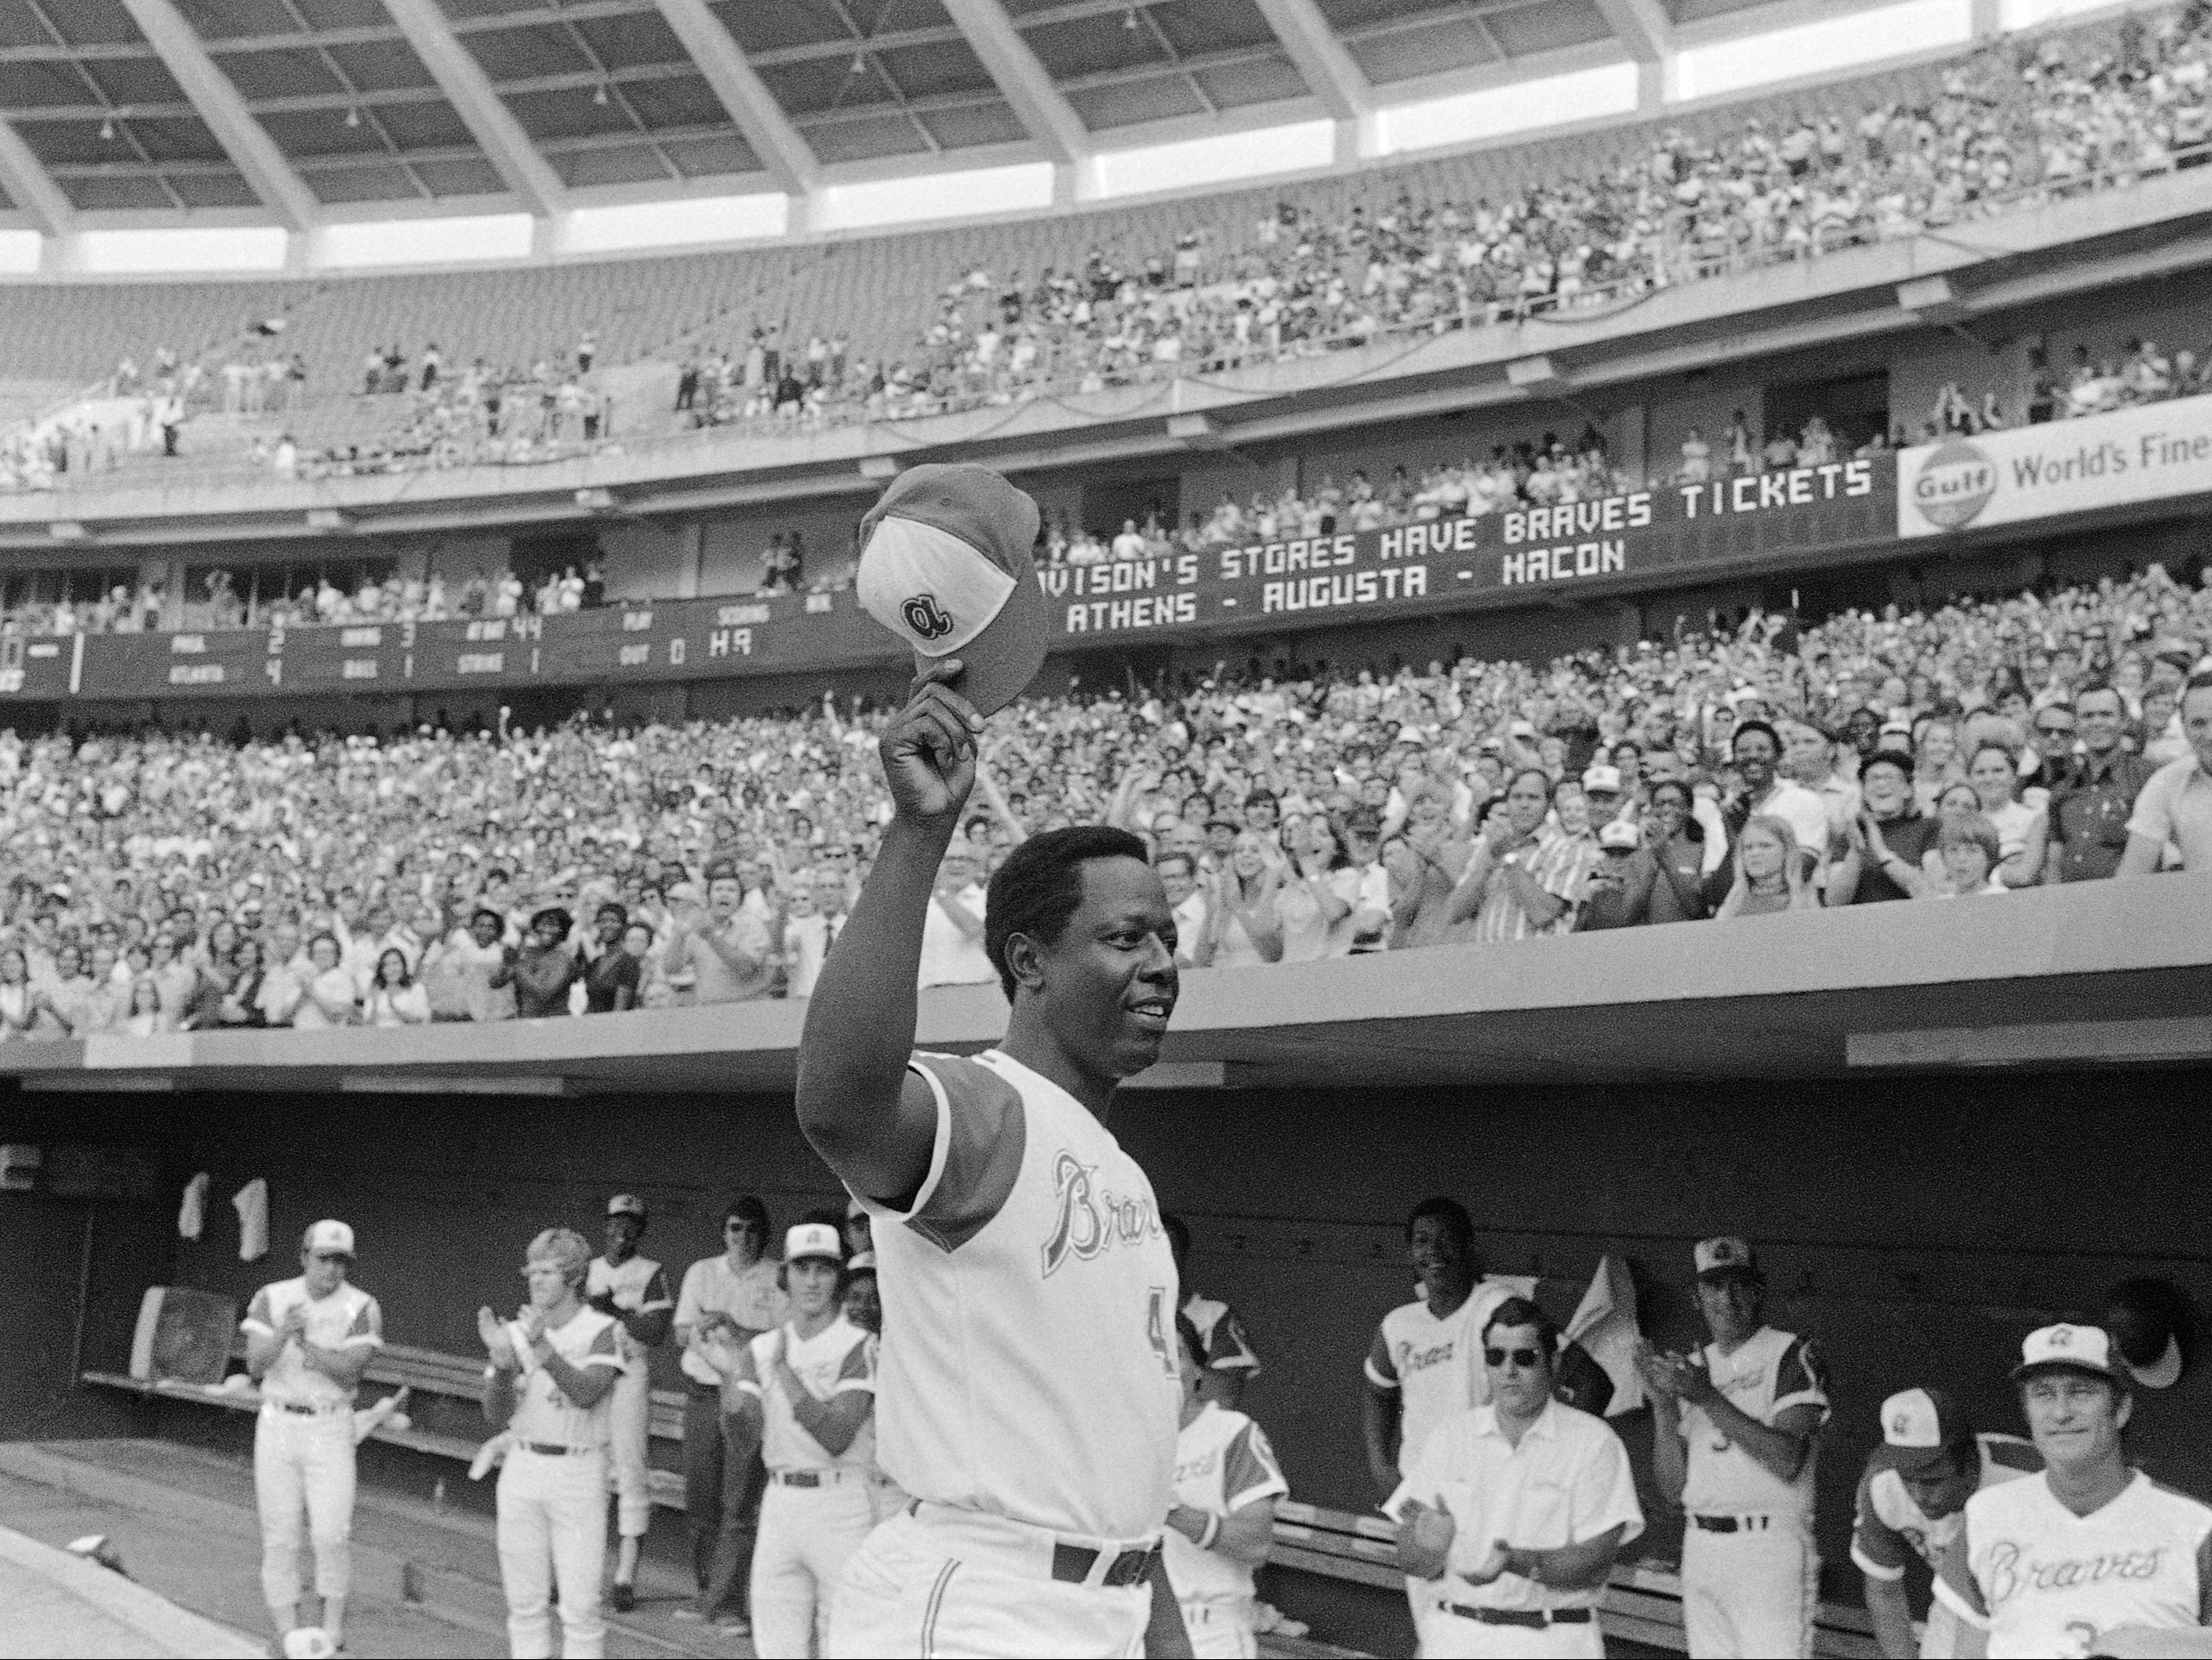 Obama leads tributes to legendary Black baseball player Hank Aaron